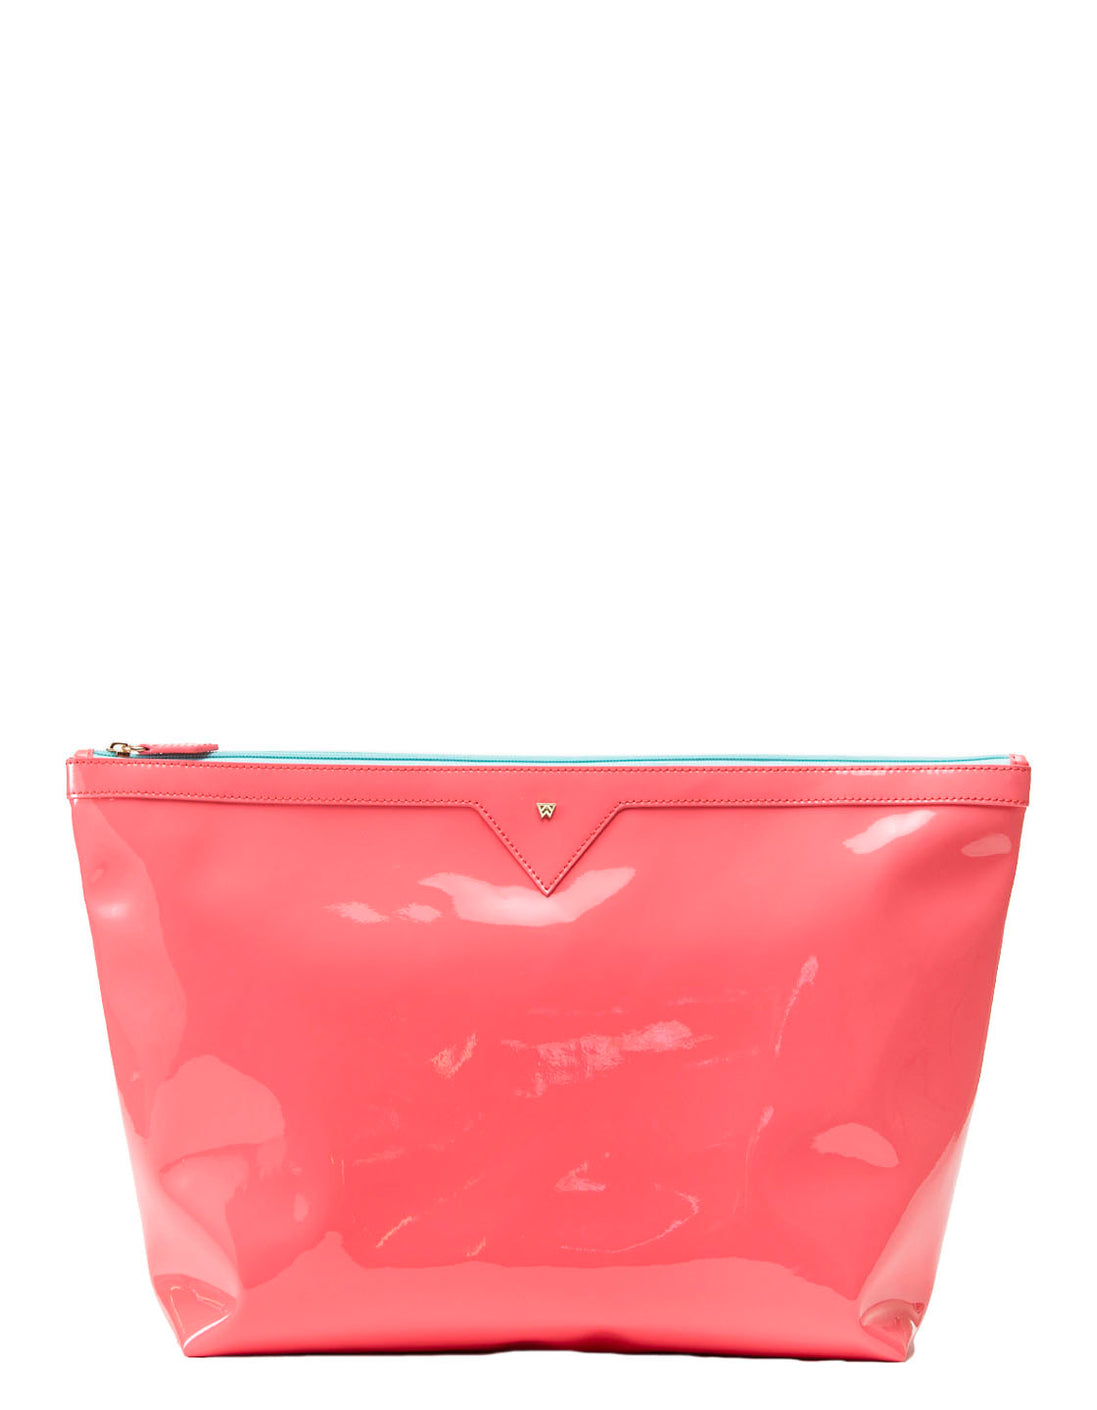 Bring on the Beach Bag in Coral/Clear